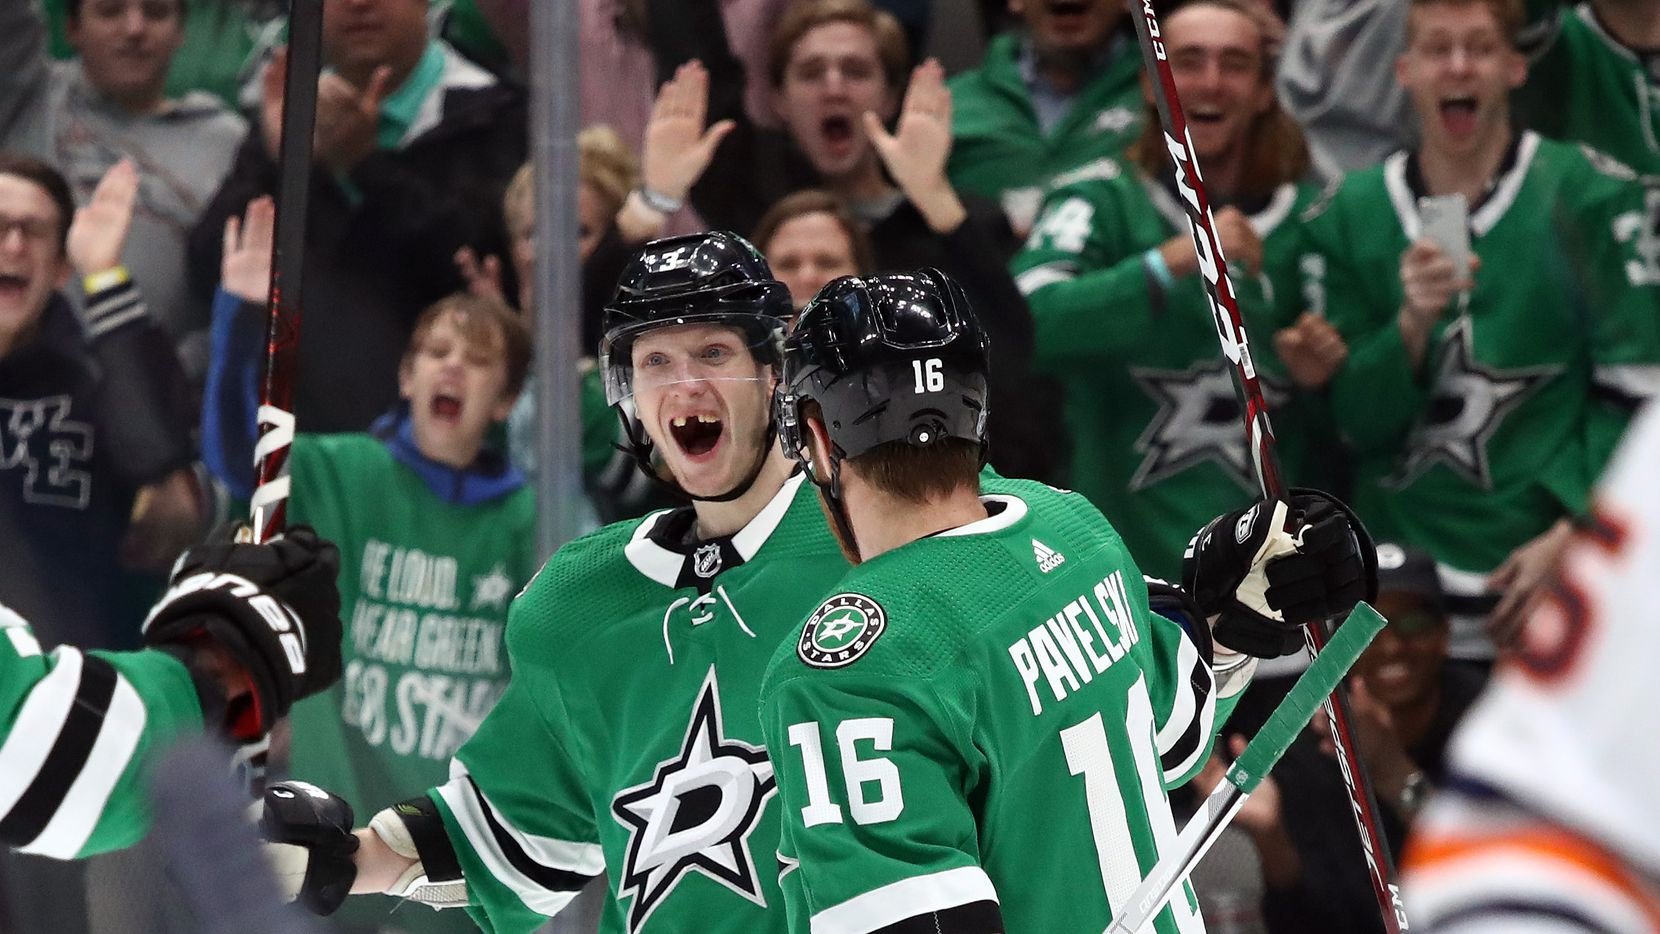 DALLAS, TEXAS - MARCH 03:  John Klingberg #3 of the Dallas Stars celebrates his goal with Joe Pavelski #16 in the third period against the Edmonton Oilers at American Airlines Center on March 03, 2020 in Dallas, Texas.